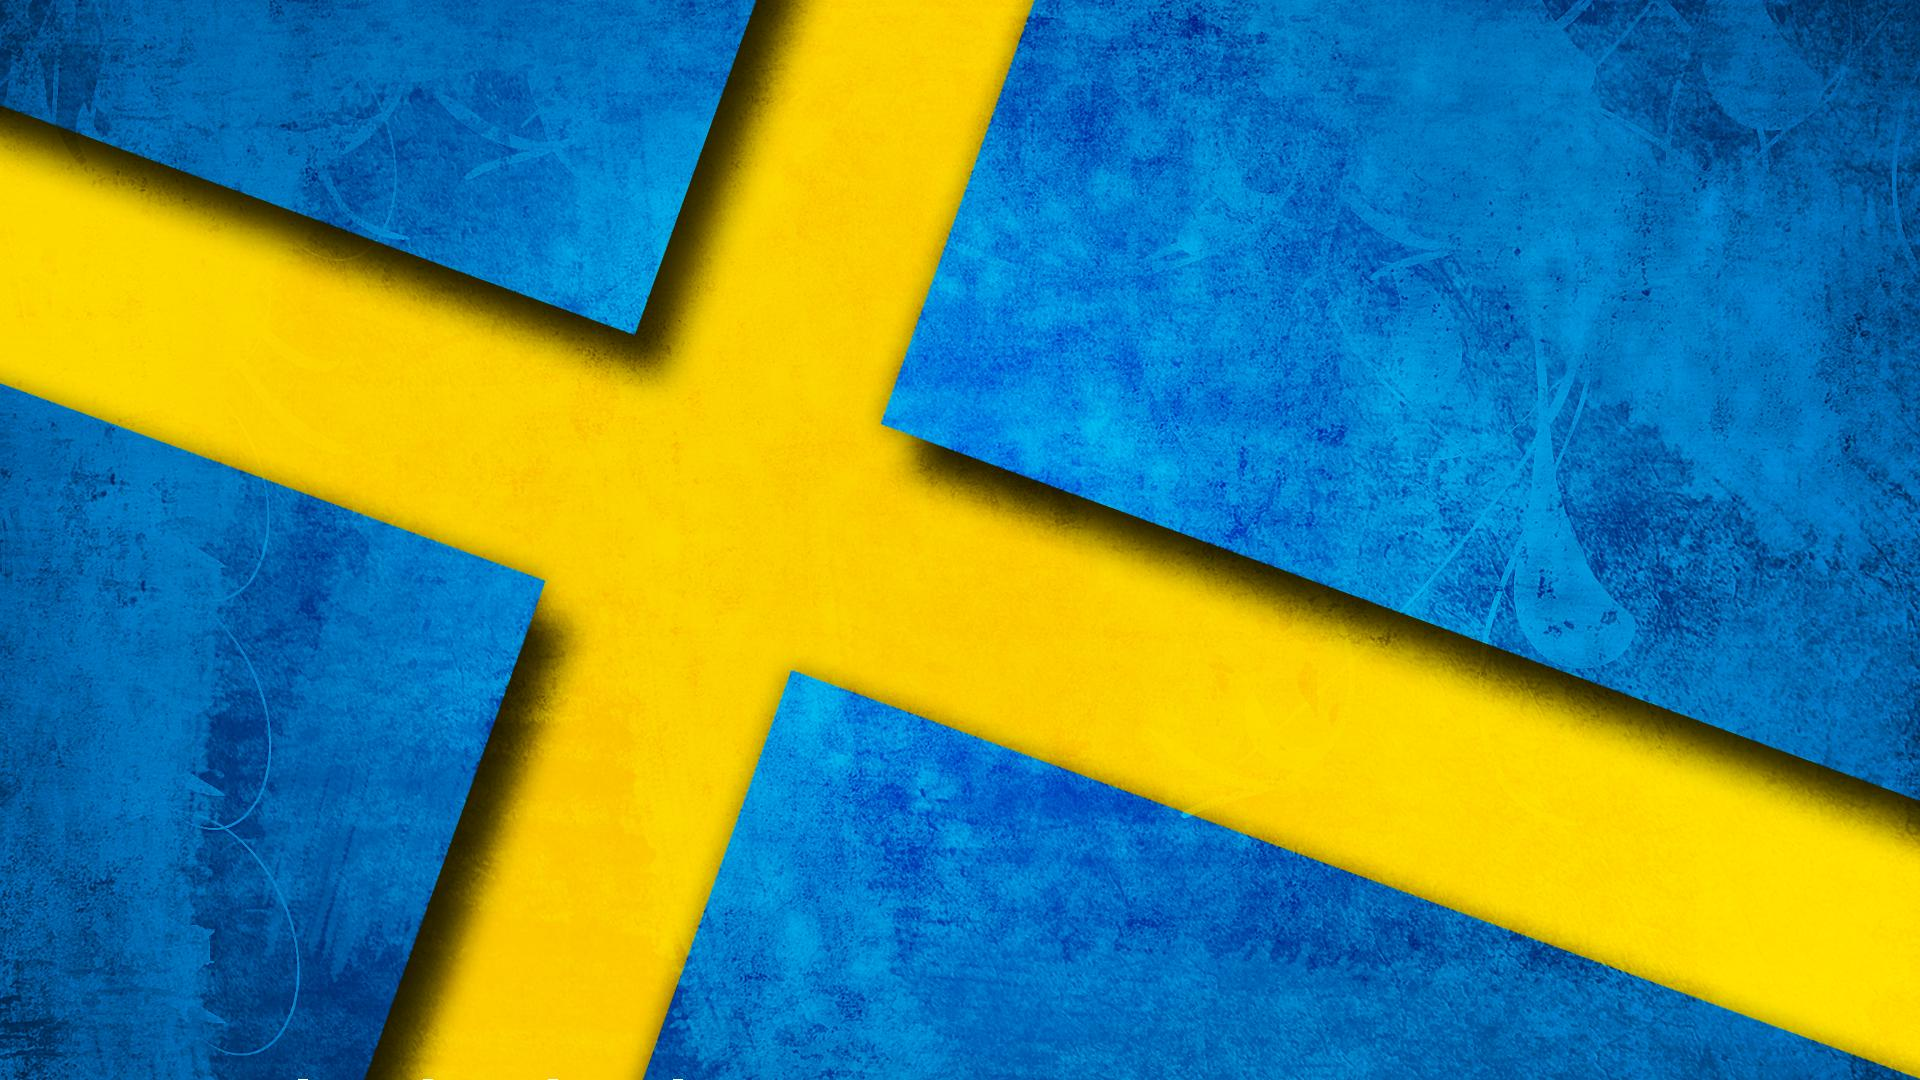 Swedish Flag Wallpaper   52DazheW Gallery 1920x1080